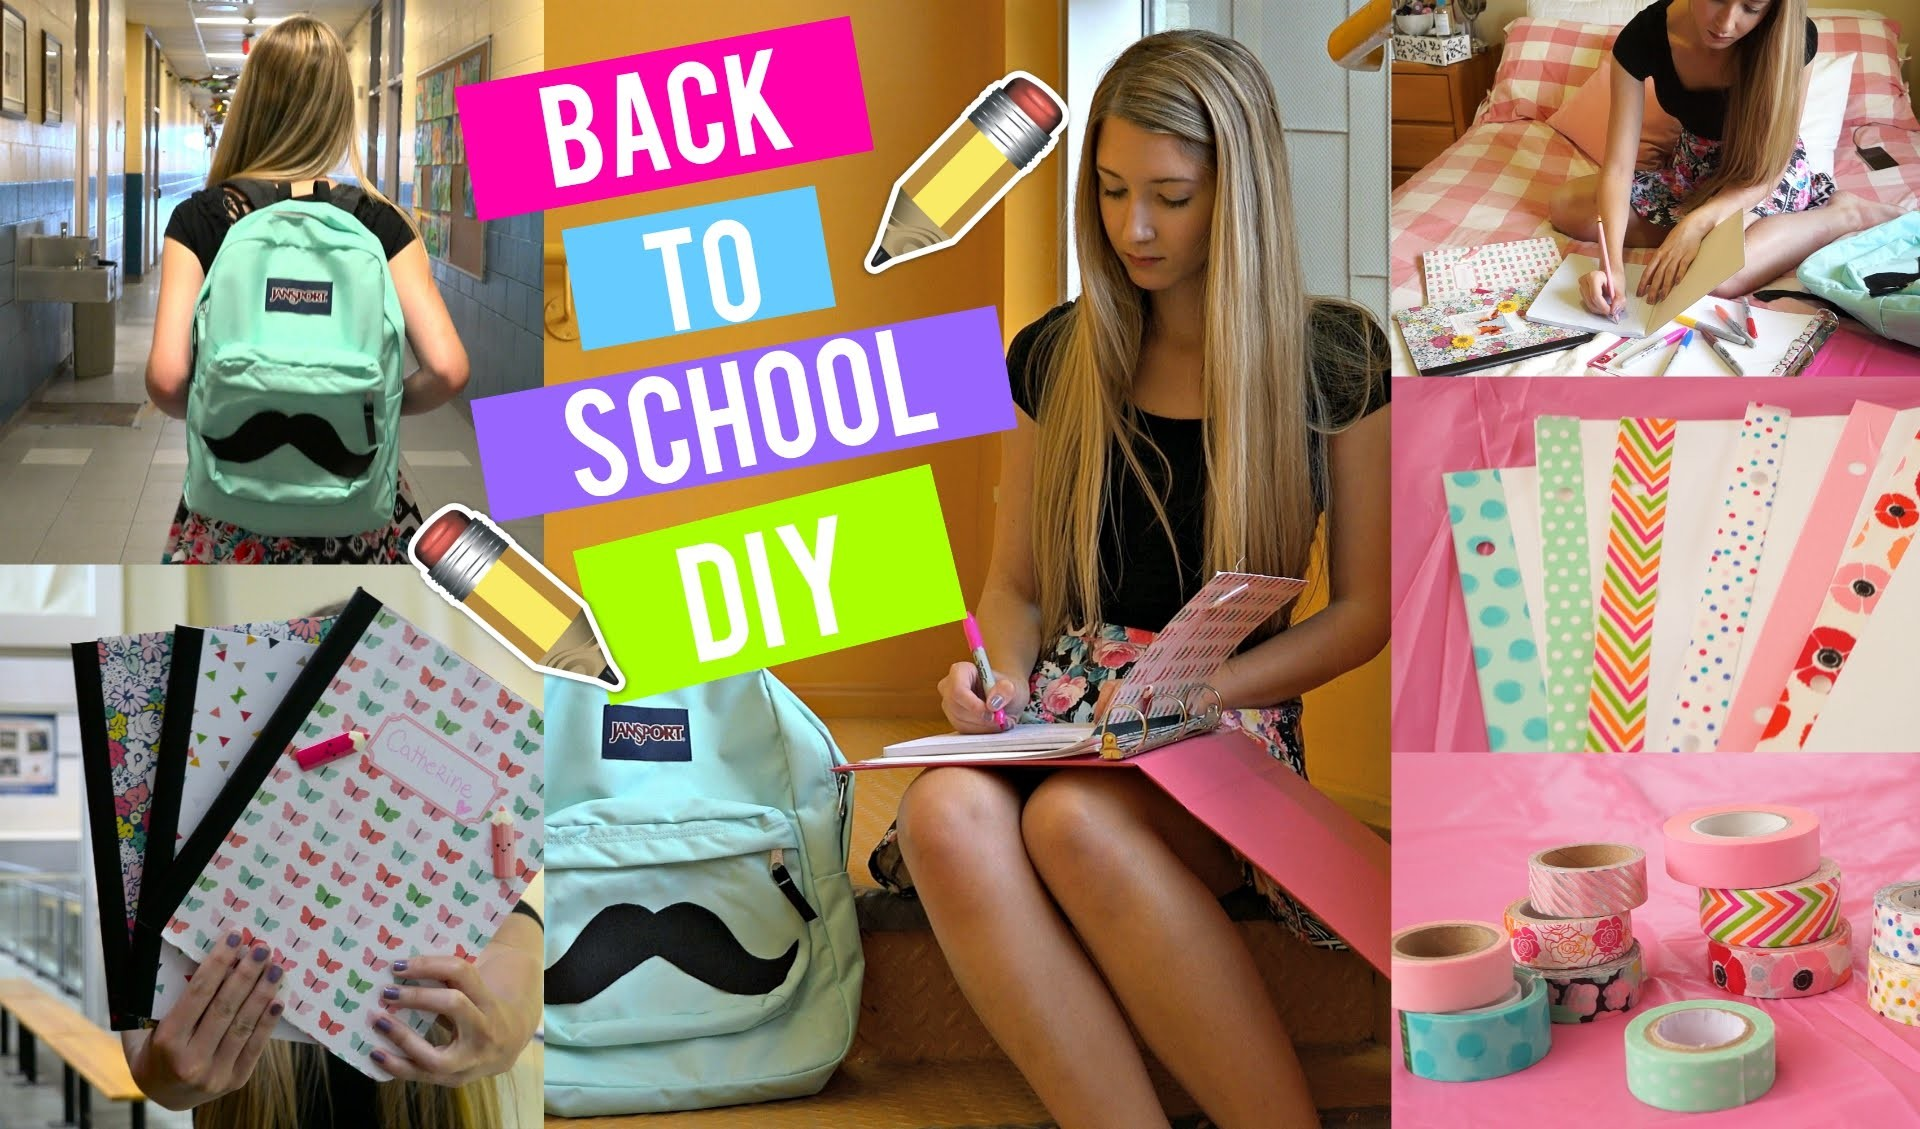 DIY FOURNITURES SCOLAIRES ! | BACK 2 SCHOOL 2015